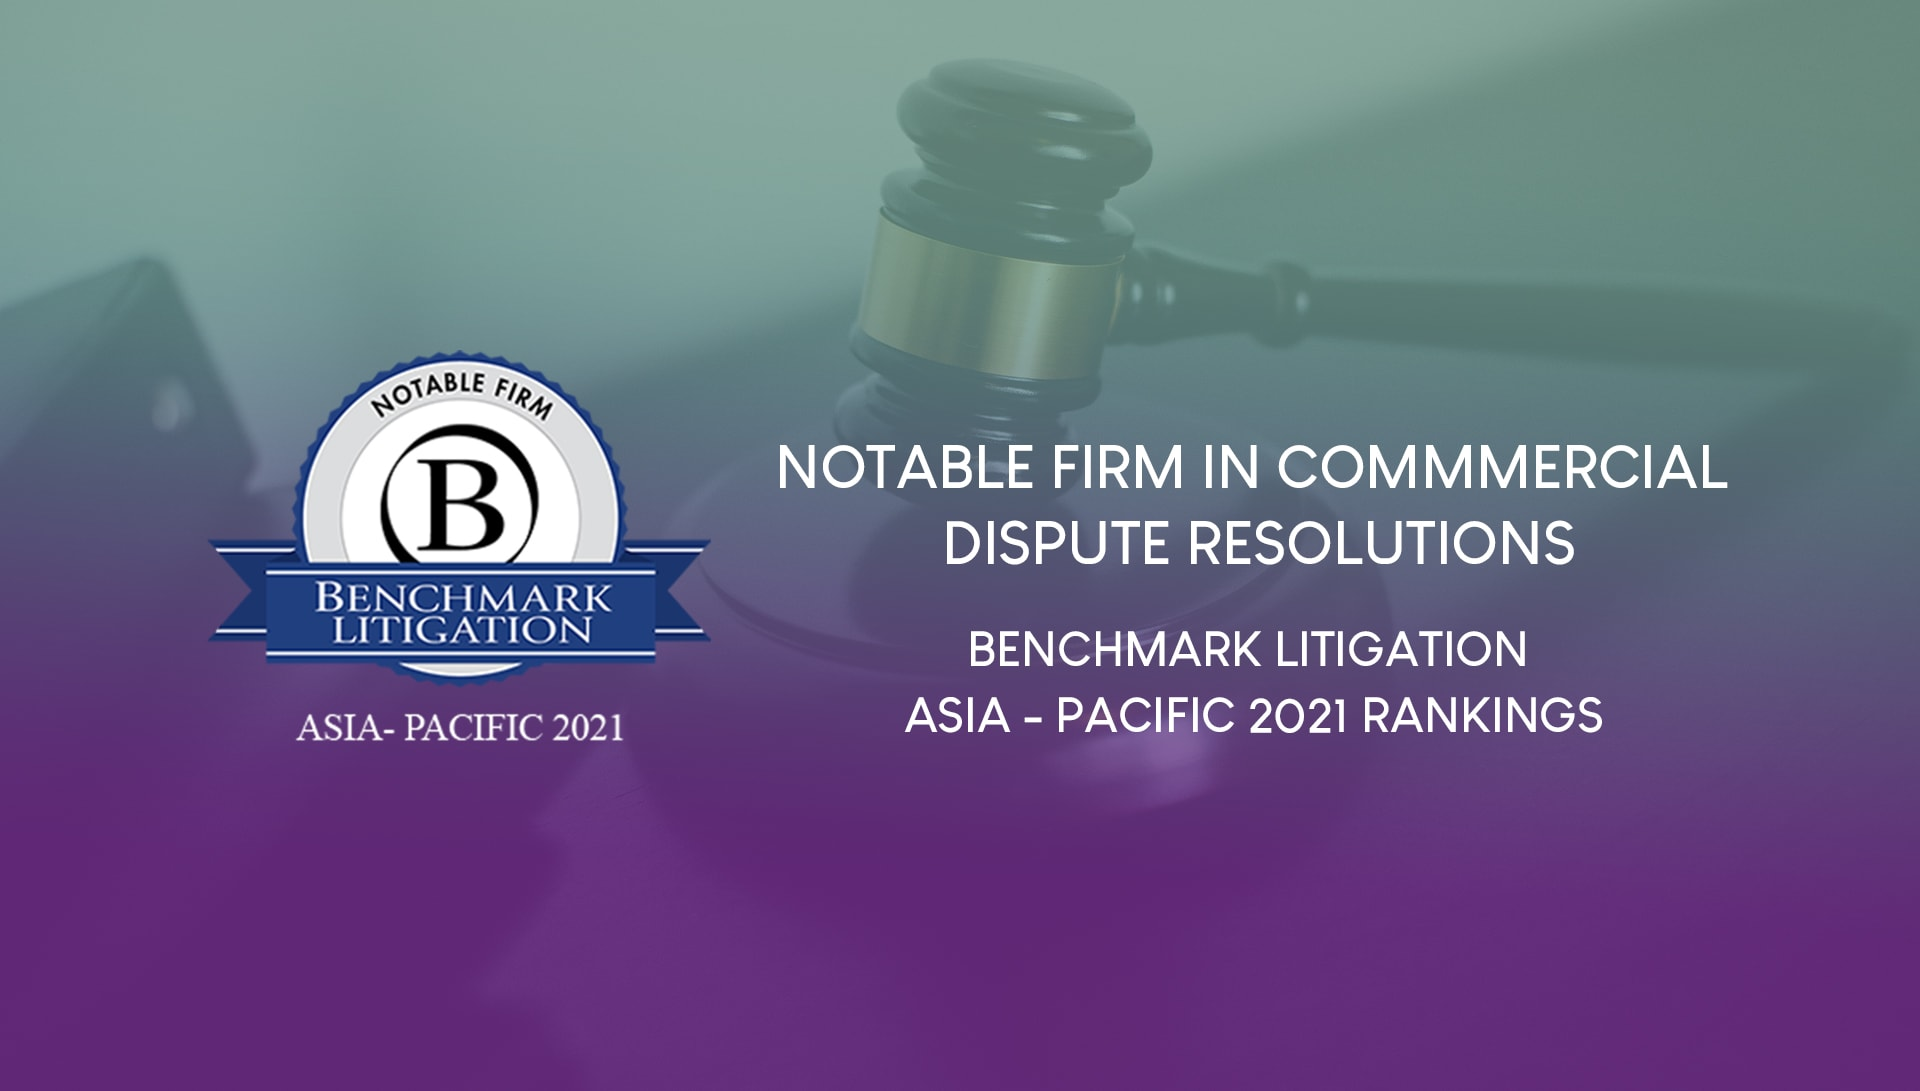 Notable Firm in Commercial Dispute Resolution